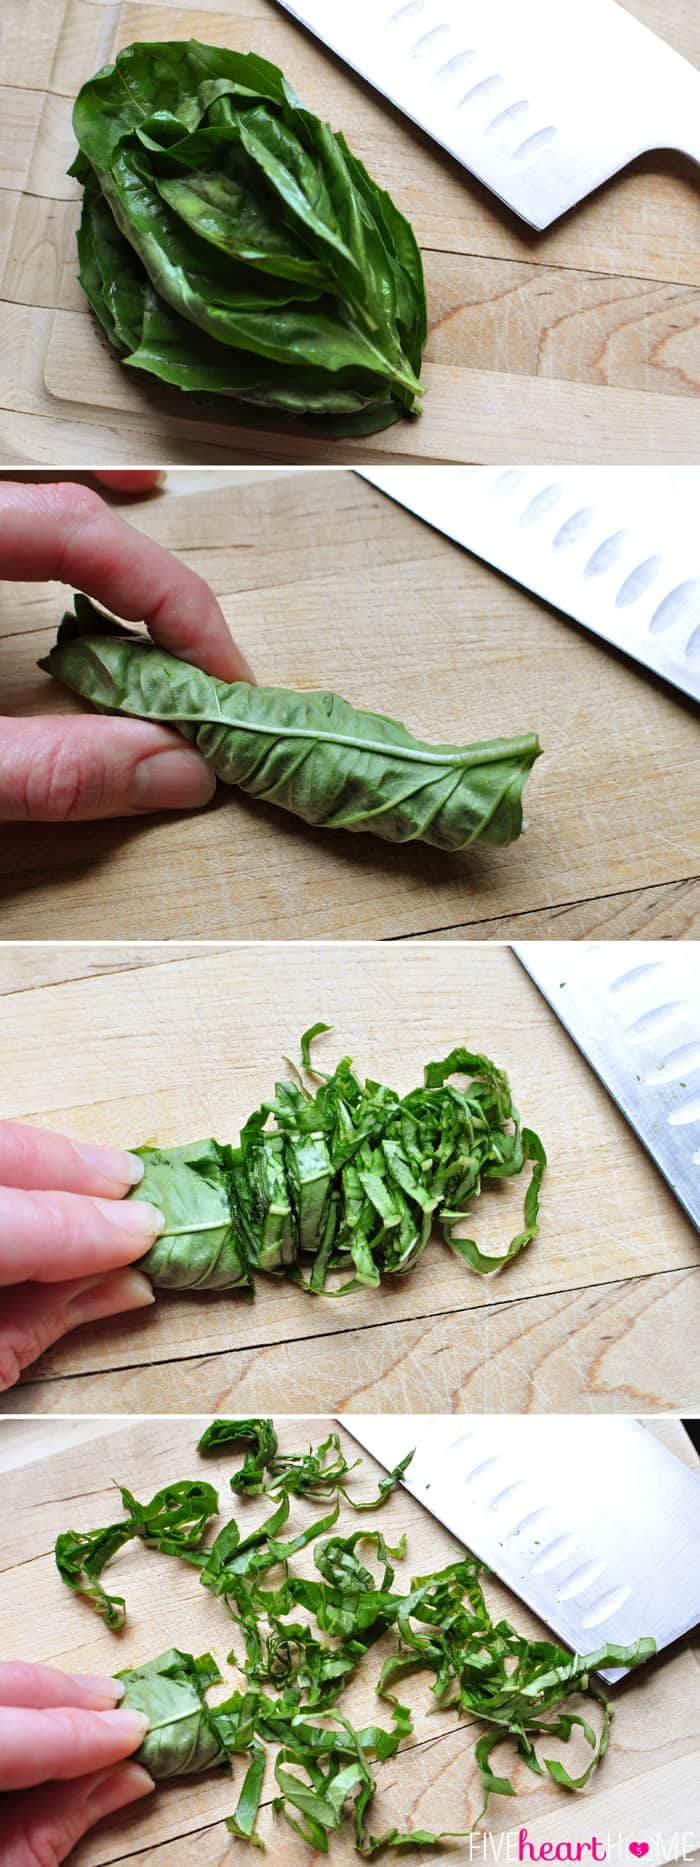 Step-by-step on how to Chiffonade Basil